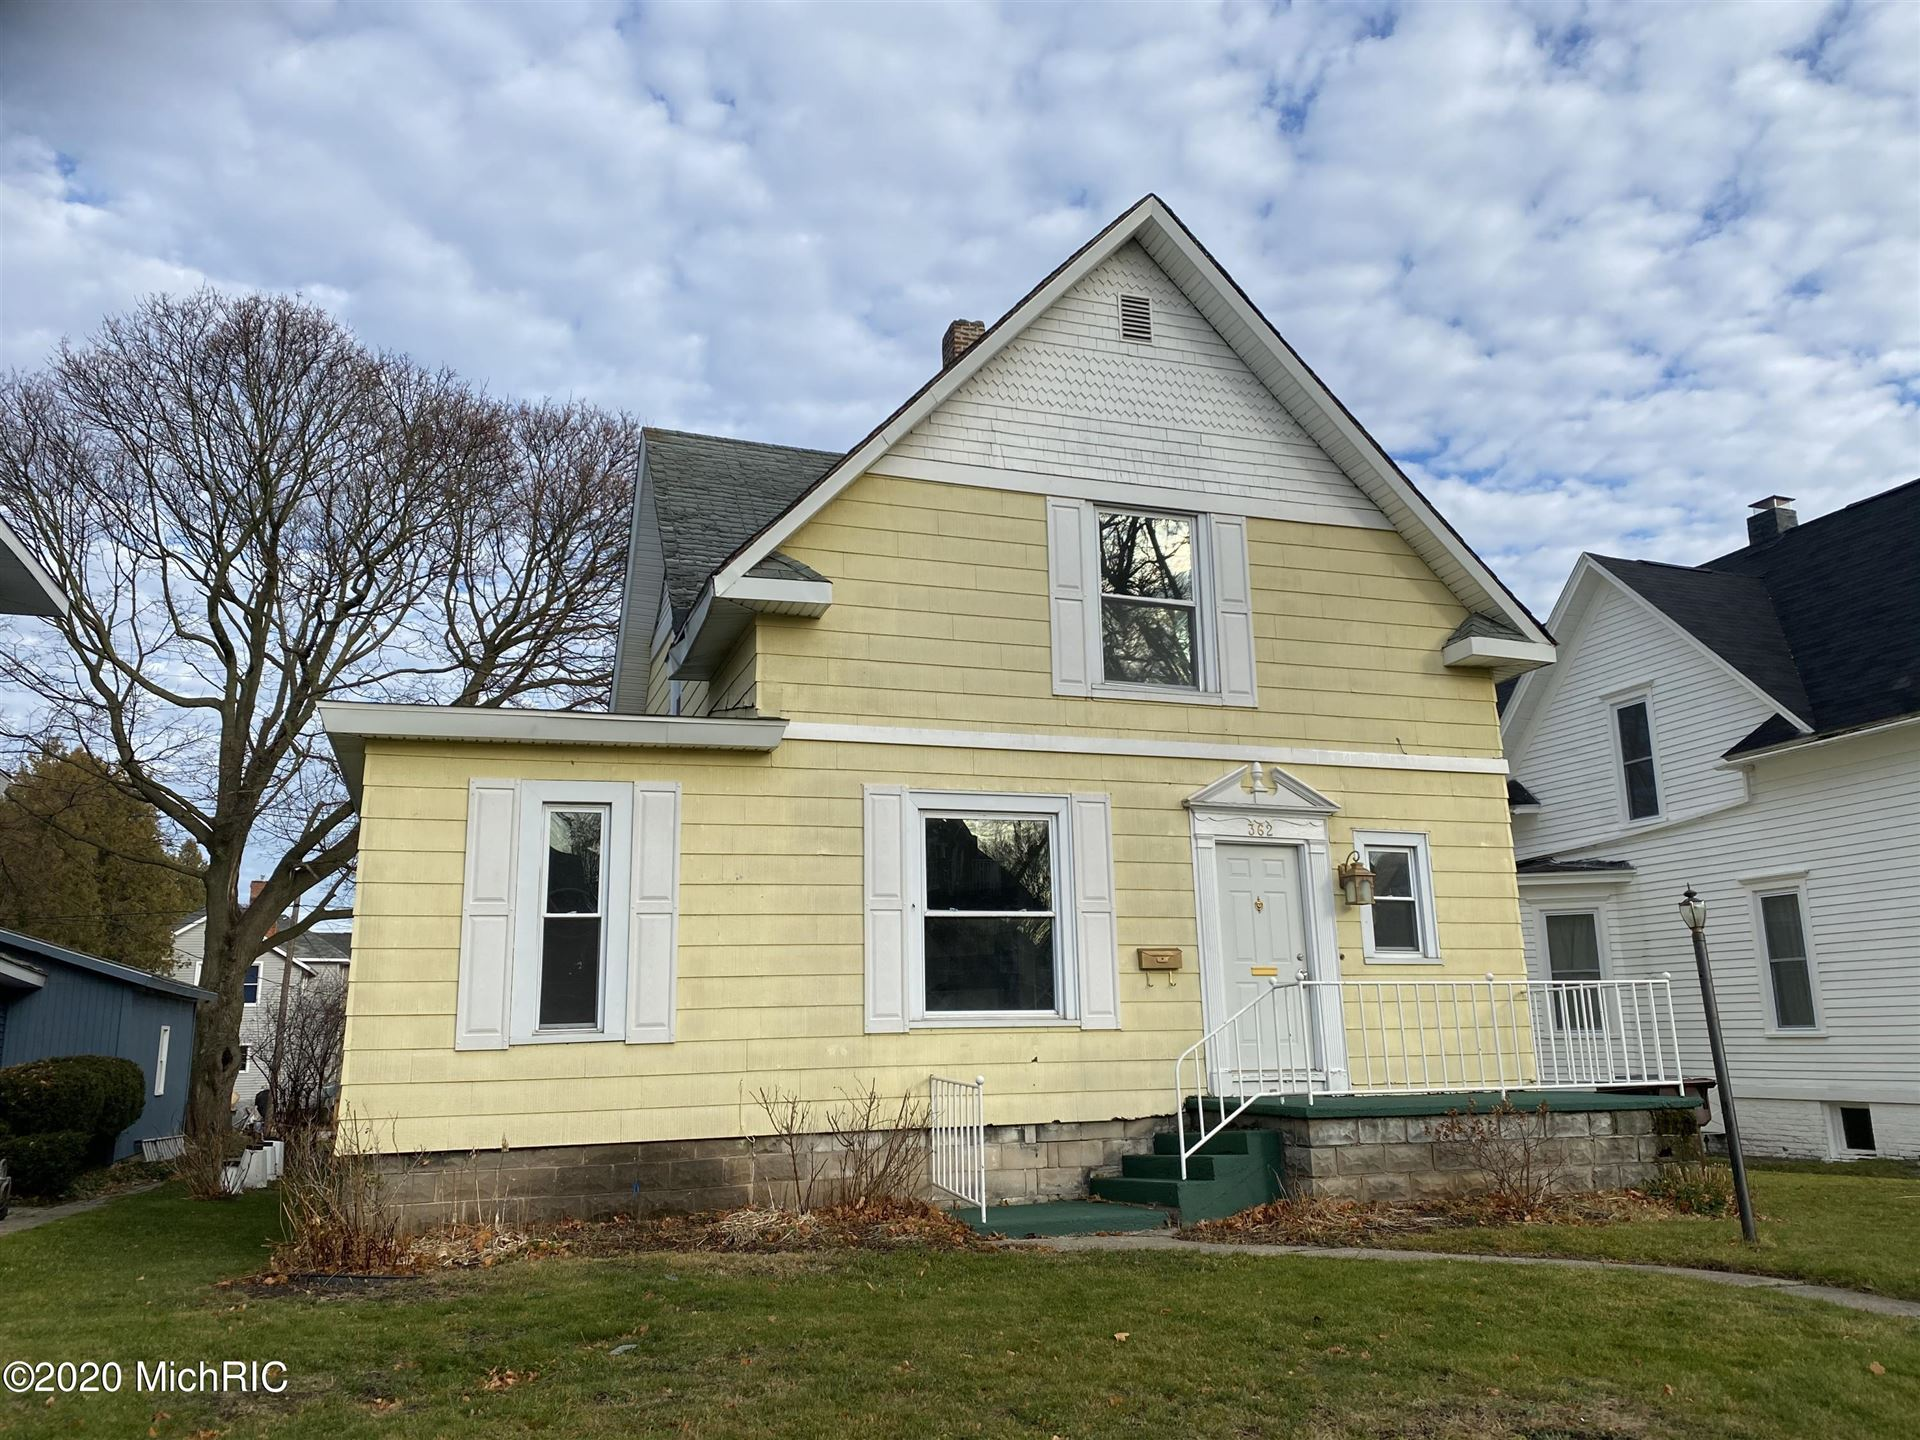 362 Second Street, Manistee, MI 49660 - MLS#: 20050373